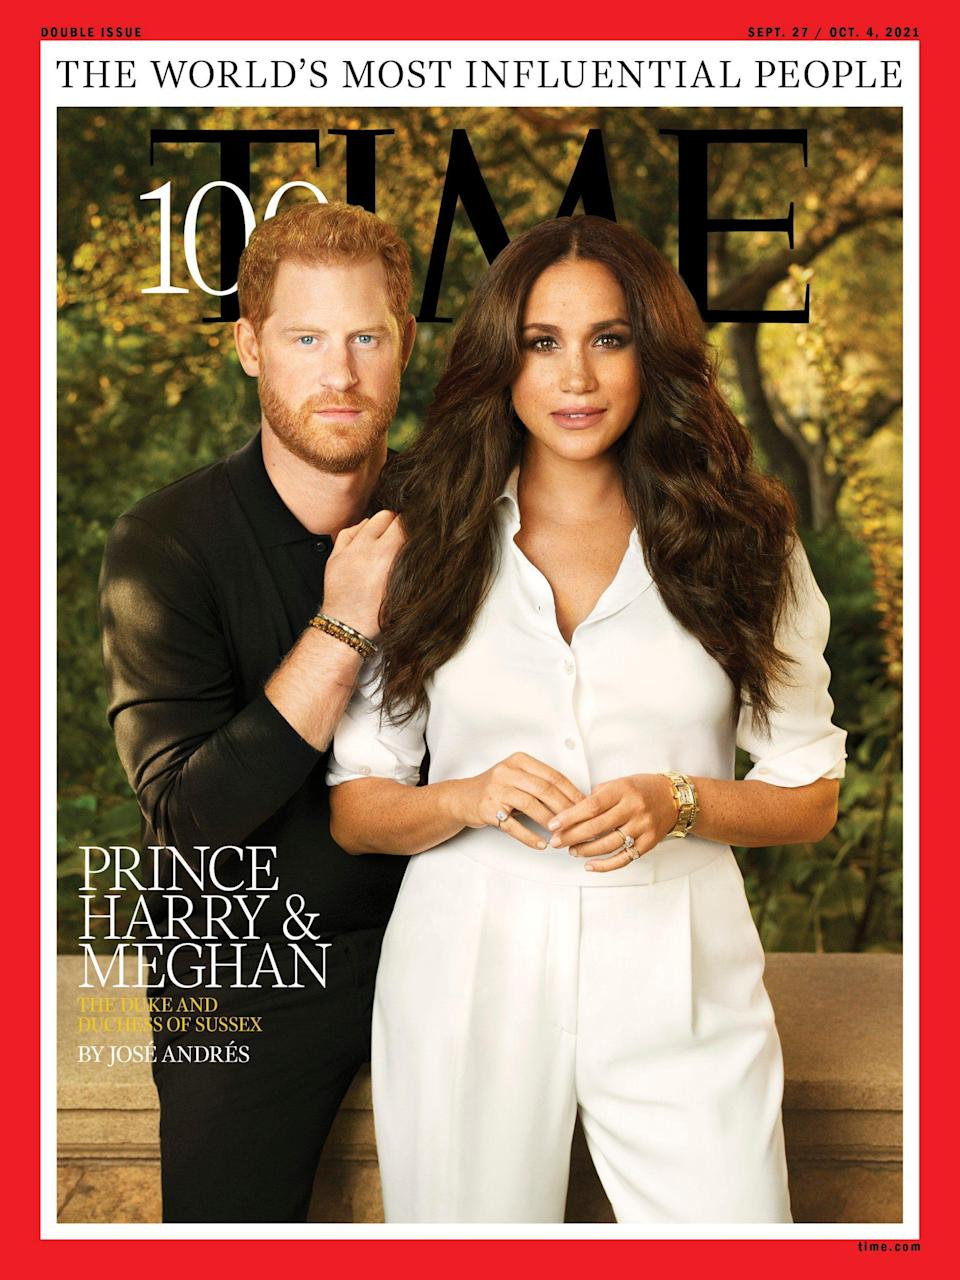 The portrait marks the first time the couple has formally posed for a magazine shoot cover together - TIME 100